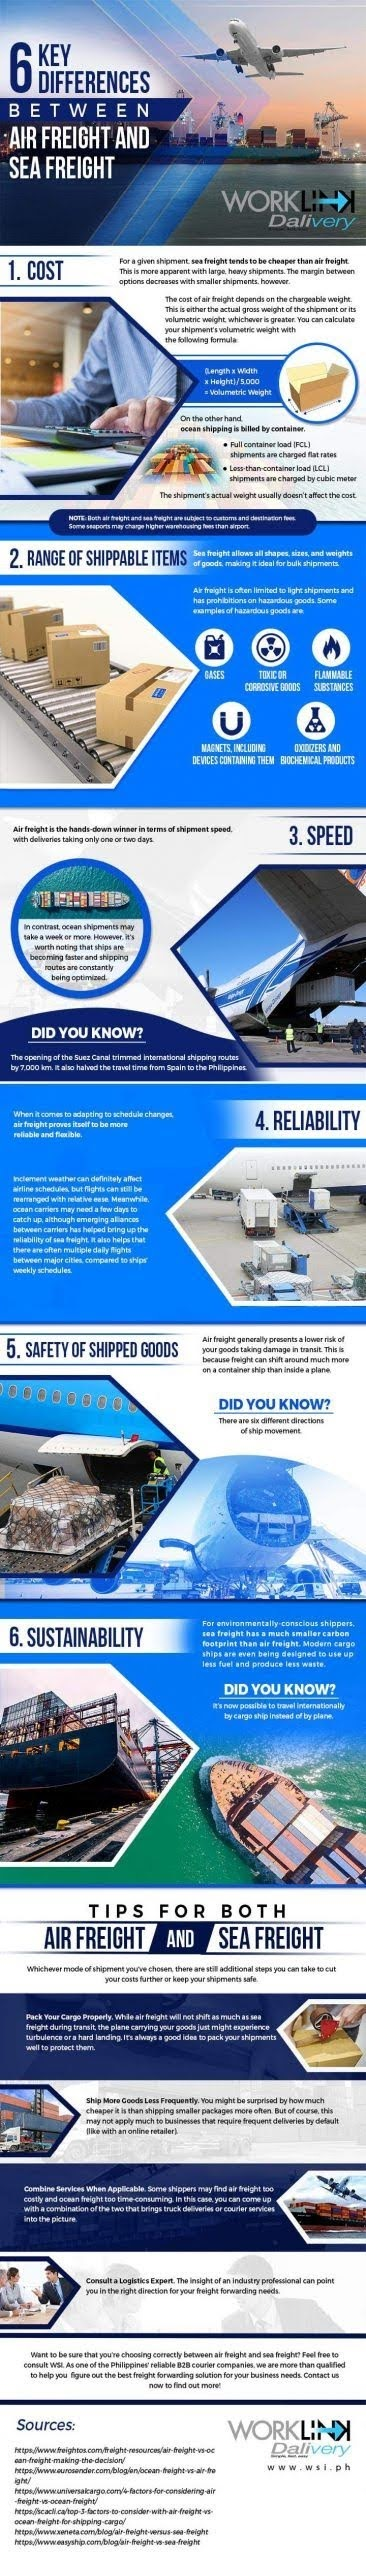 6 Key Differences Between Air Freight and Sea Freight #infographic